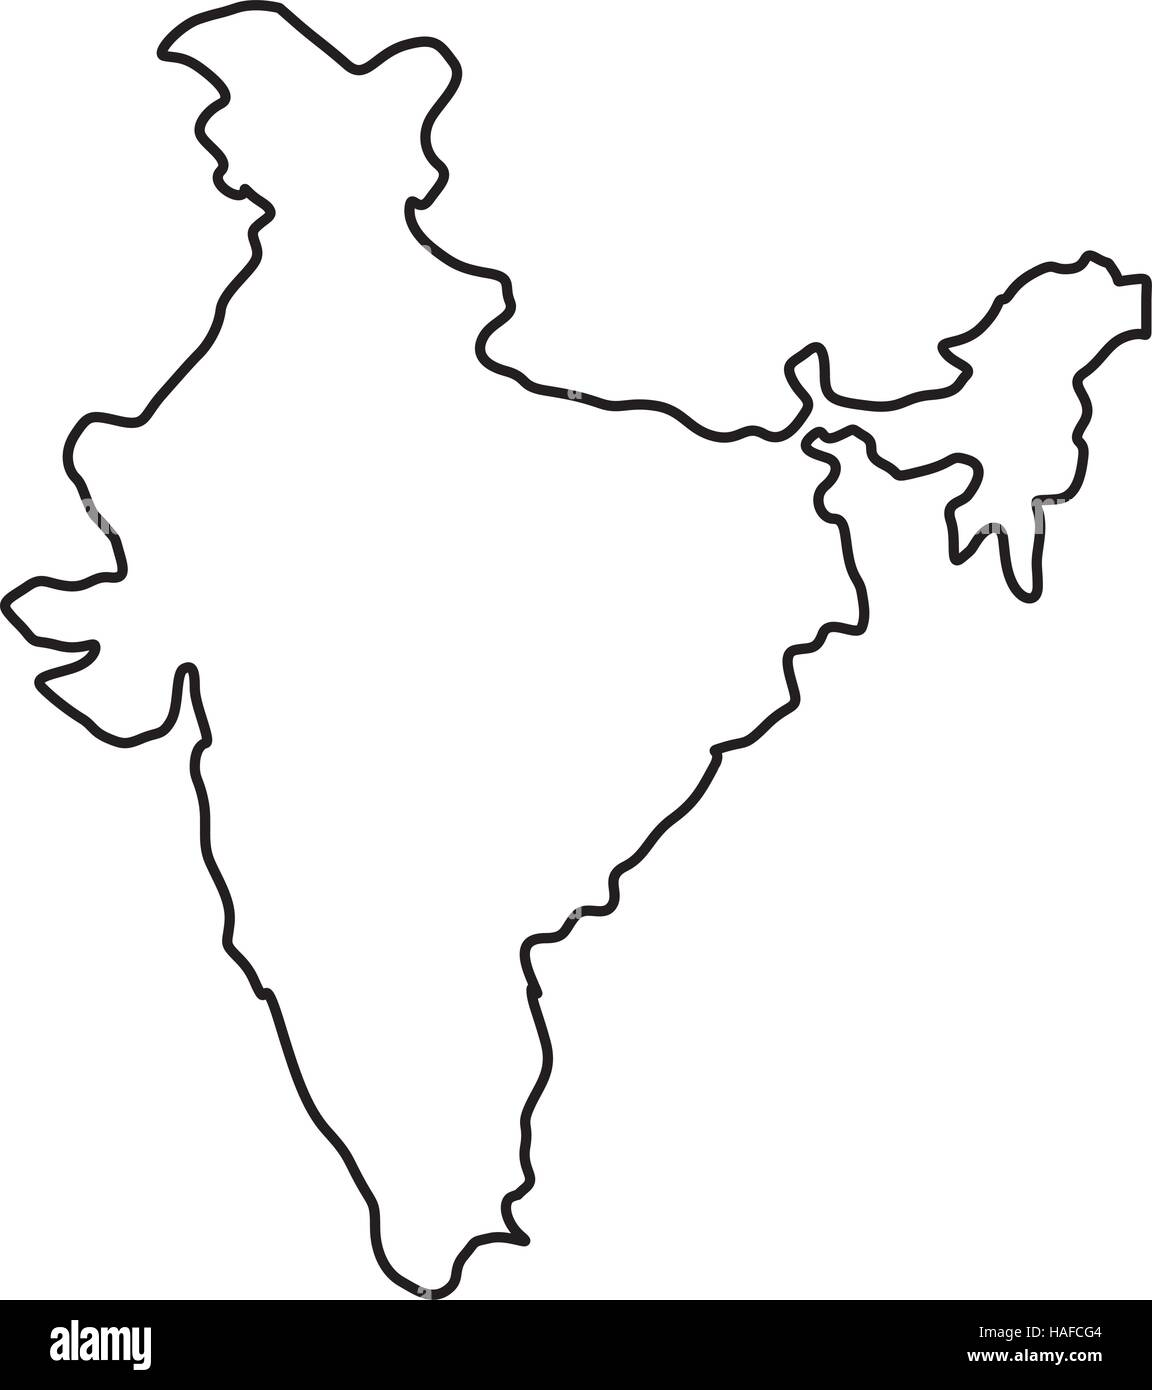 India Map Silhouette Stock Vector Art Illustration Vector Image - Map silhouette